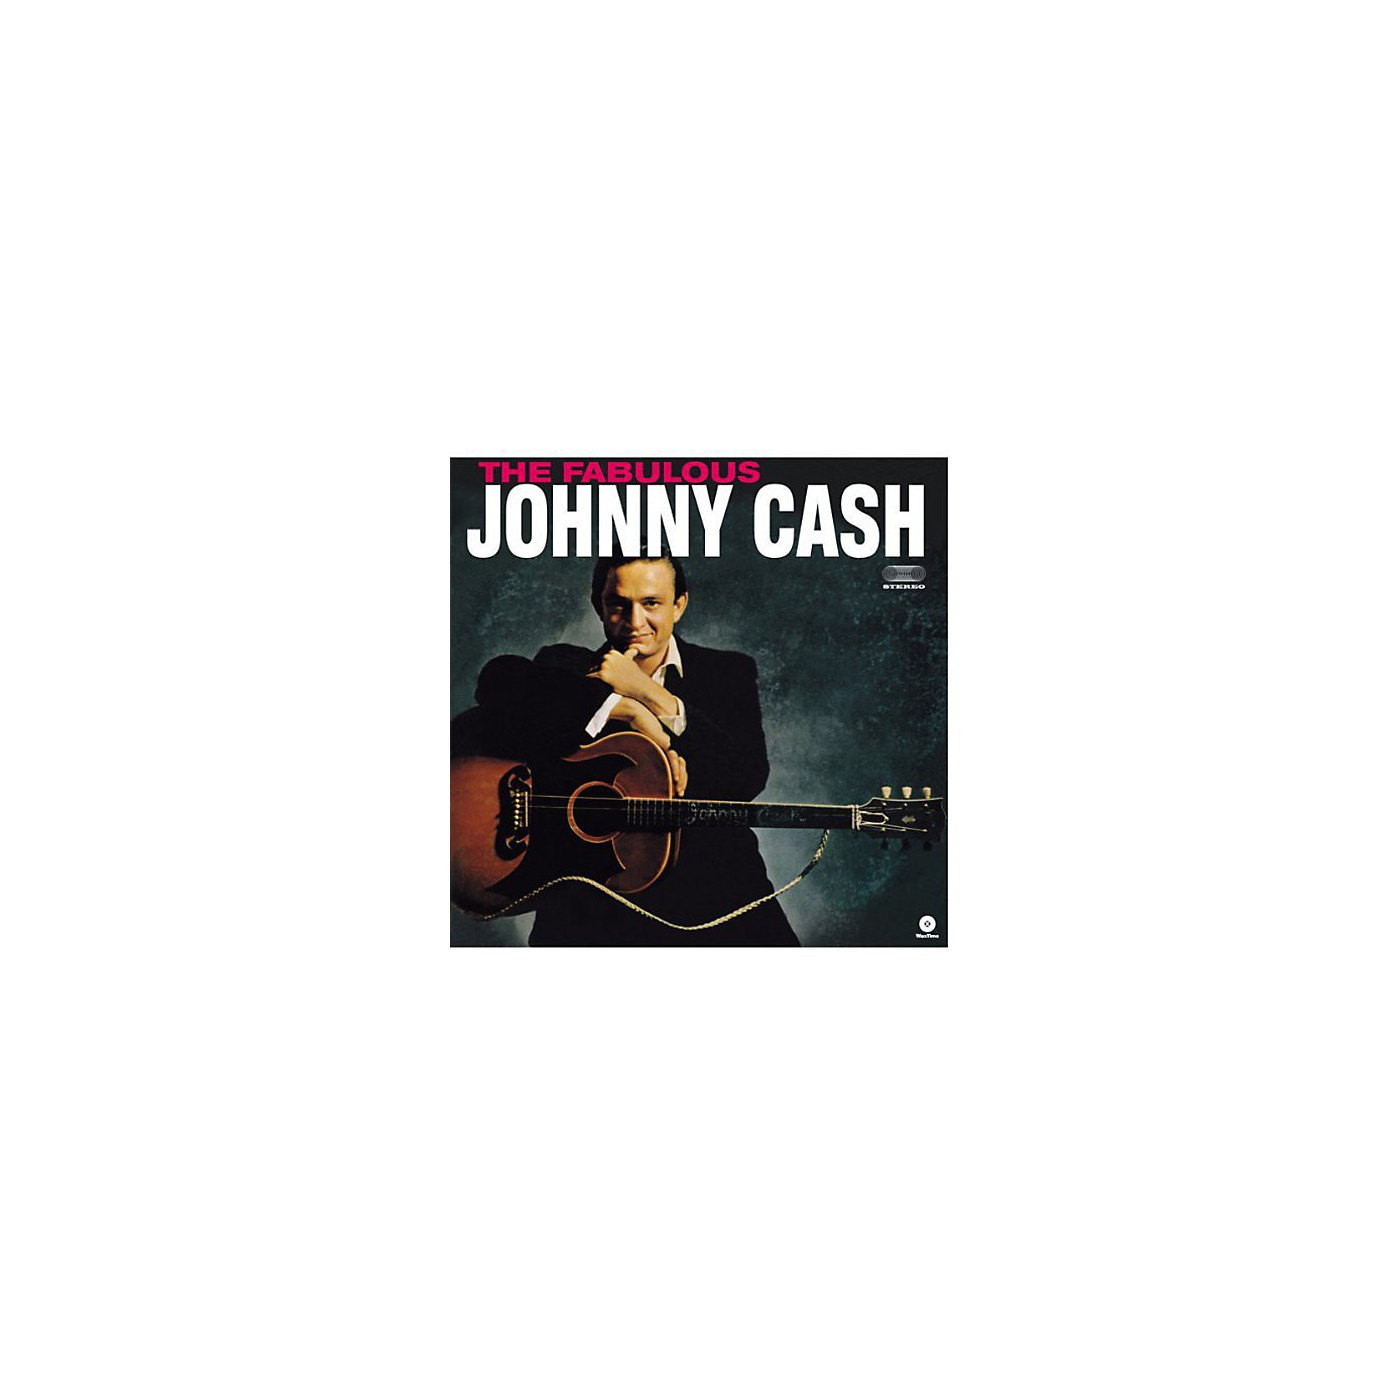 Alliance Johnny Cash - Fabulous Johnny Cash thumbnail